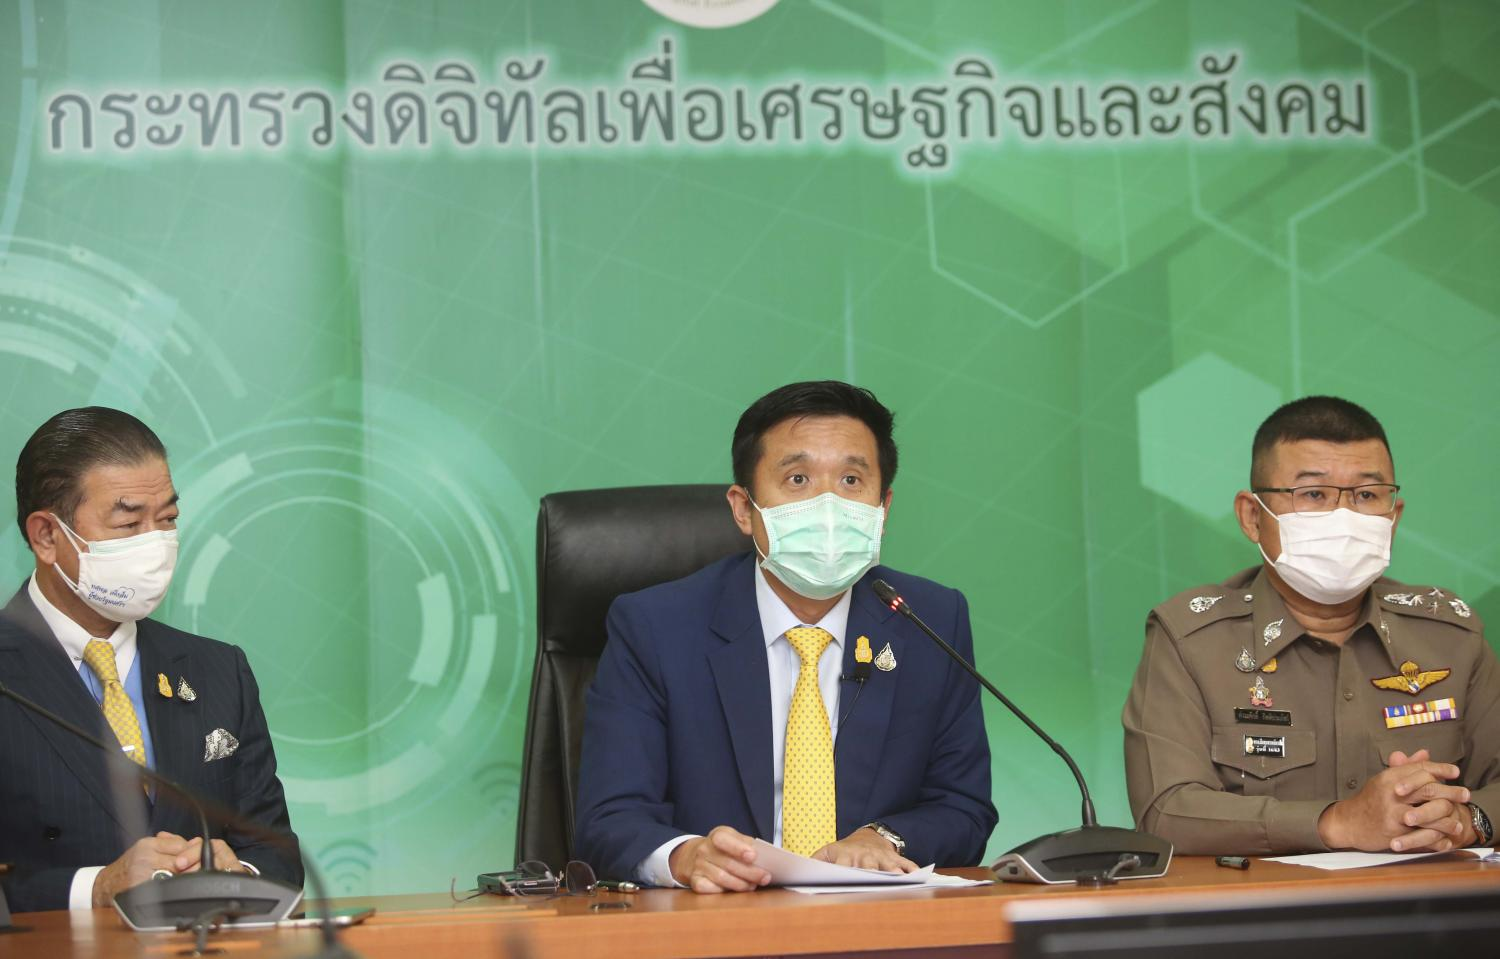 DES Minister Chaiwut Thanakhamanusorn, centre, at a press conference on the arrests of 18 social media users who allegedly disseminated fake news amid the Covid-19 crisis yesterday.Pattarapong Chatpattarasill